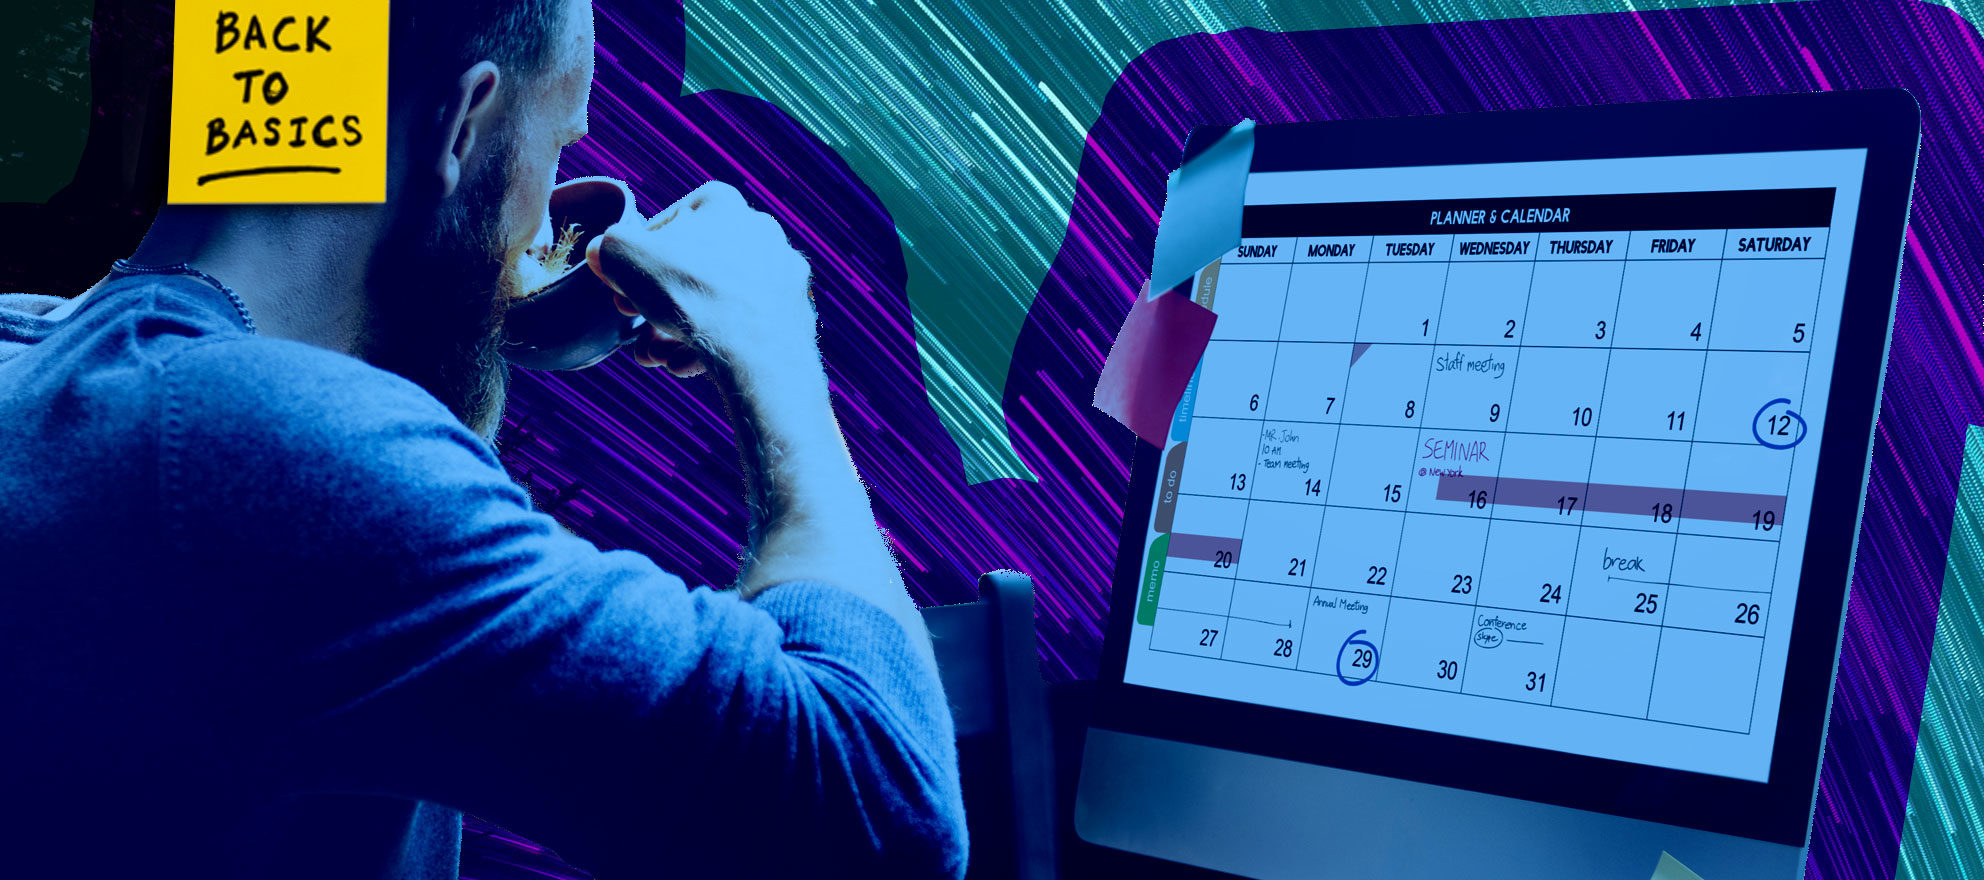 A fool-proof approach to creating and scheduling content